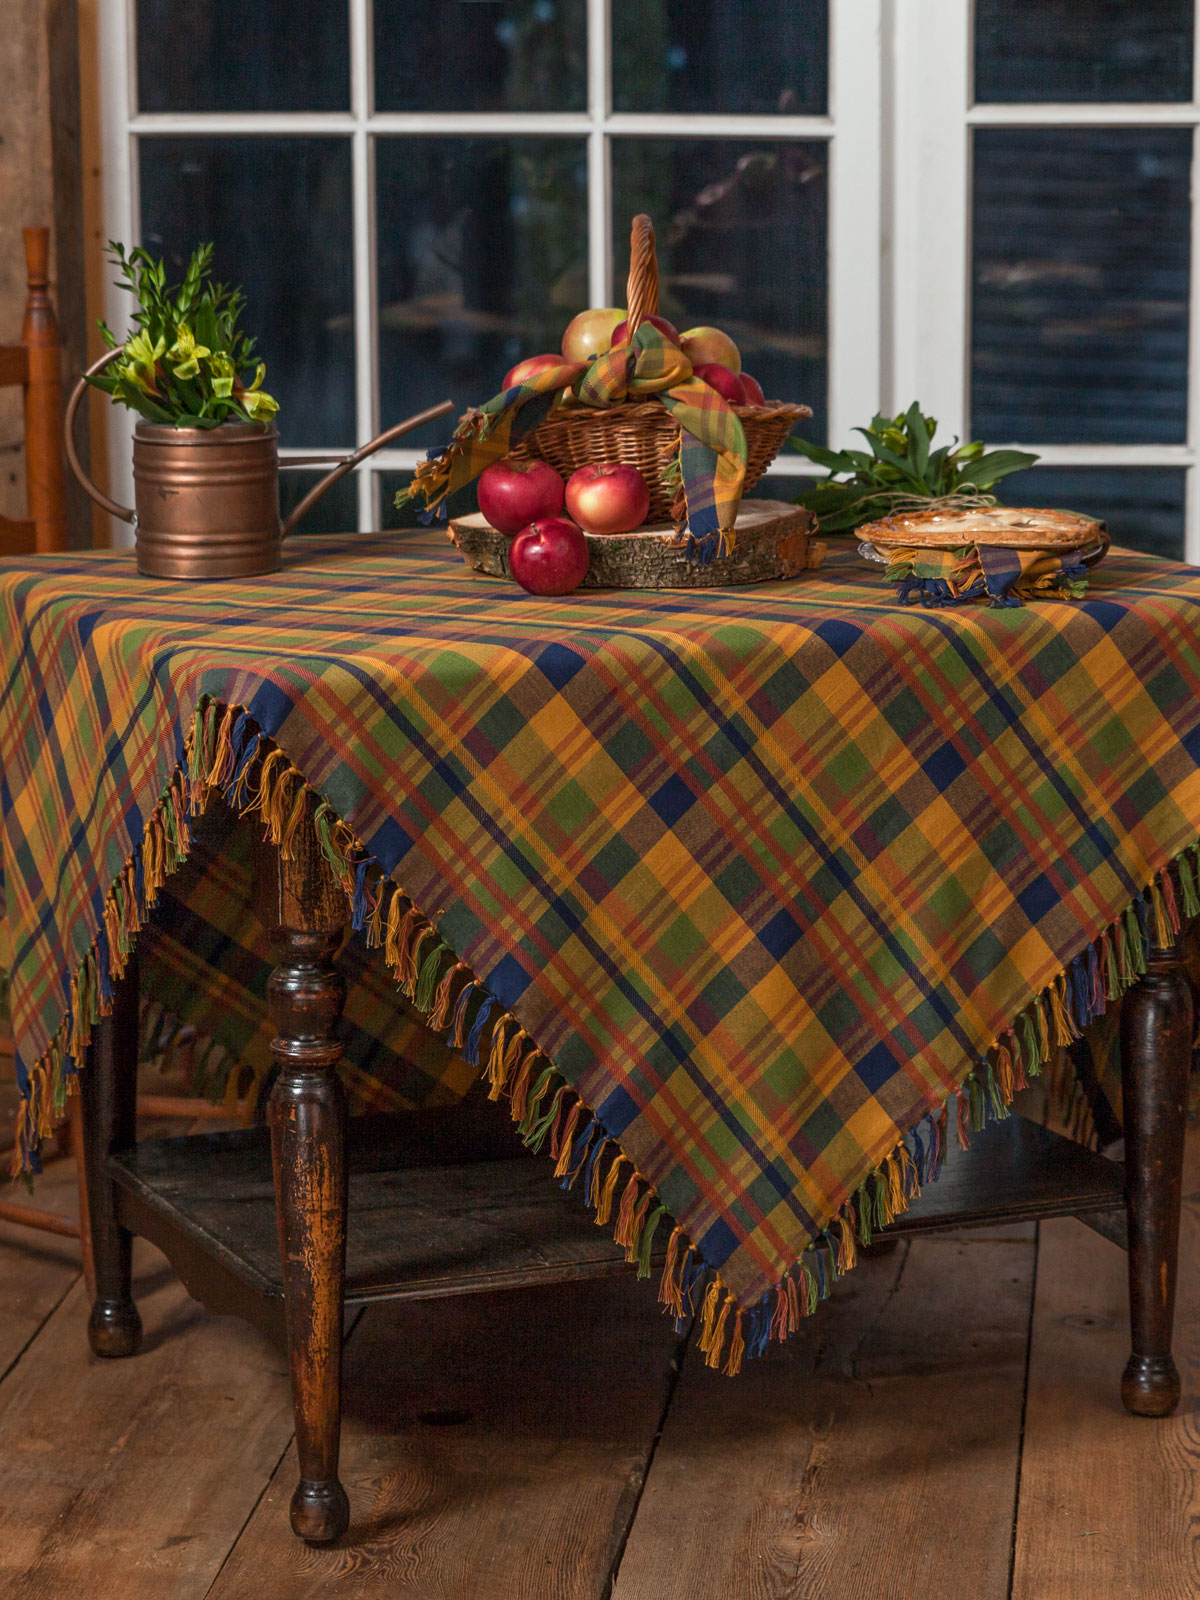 Flea Market Plaid Tablecloth